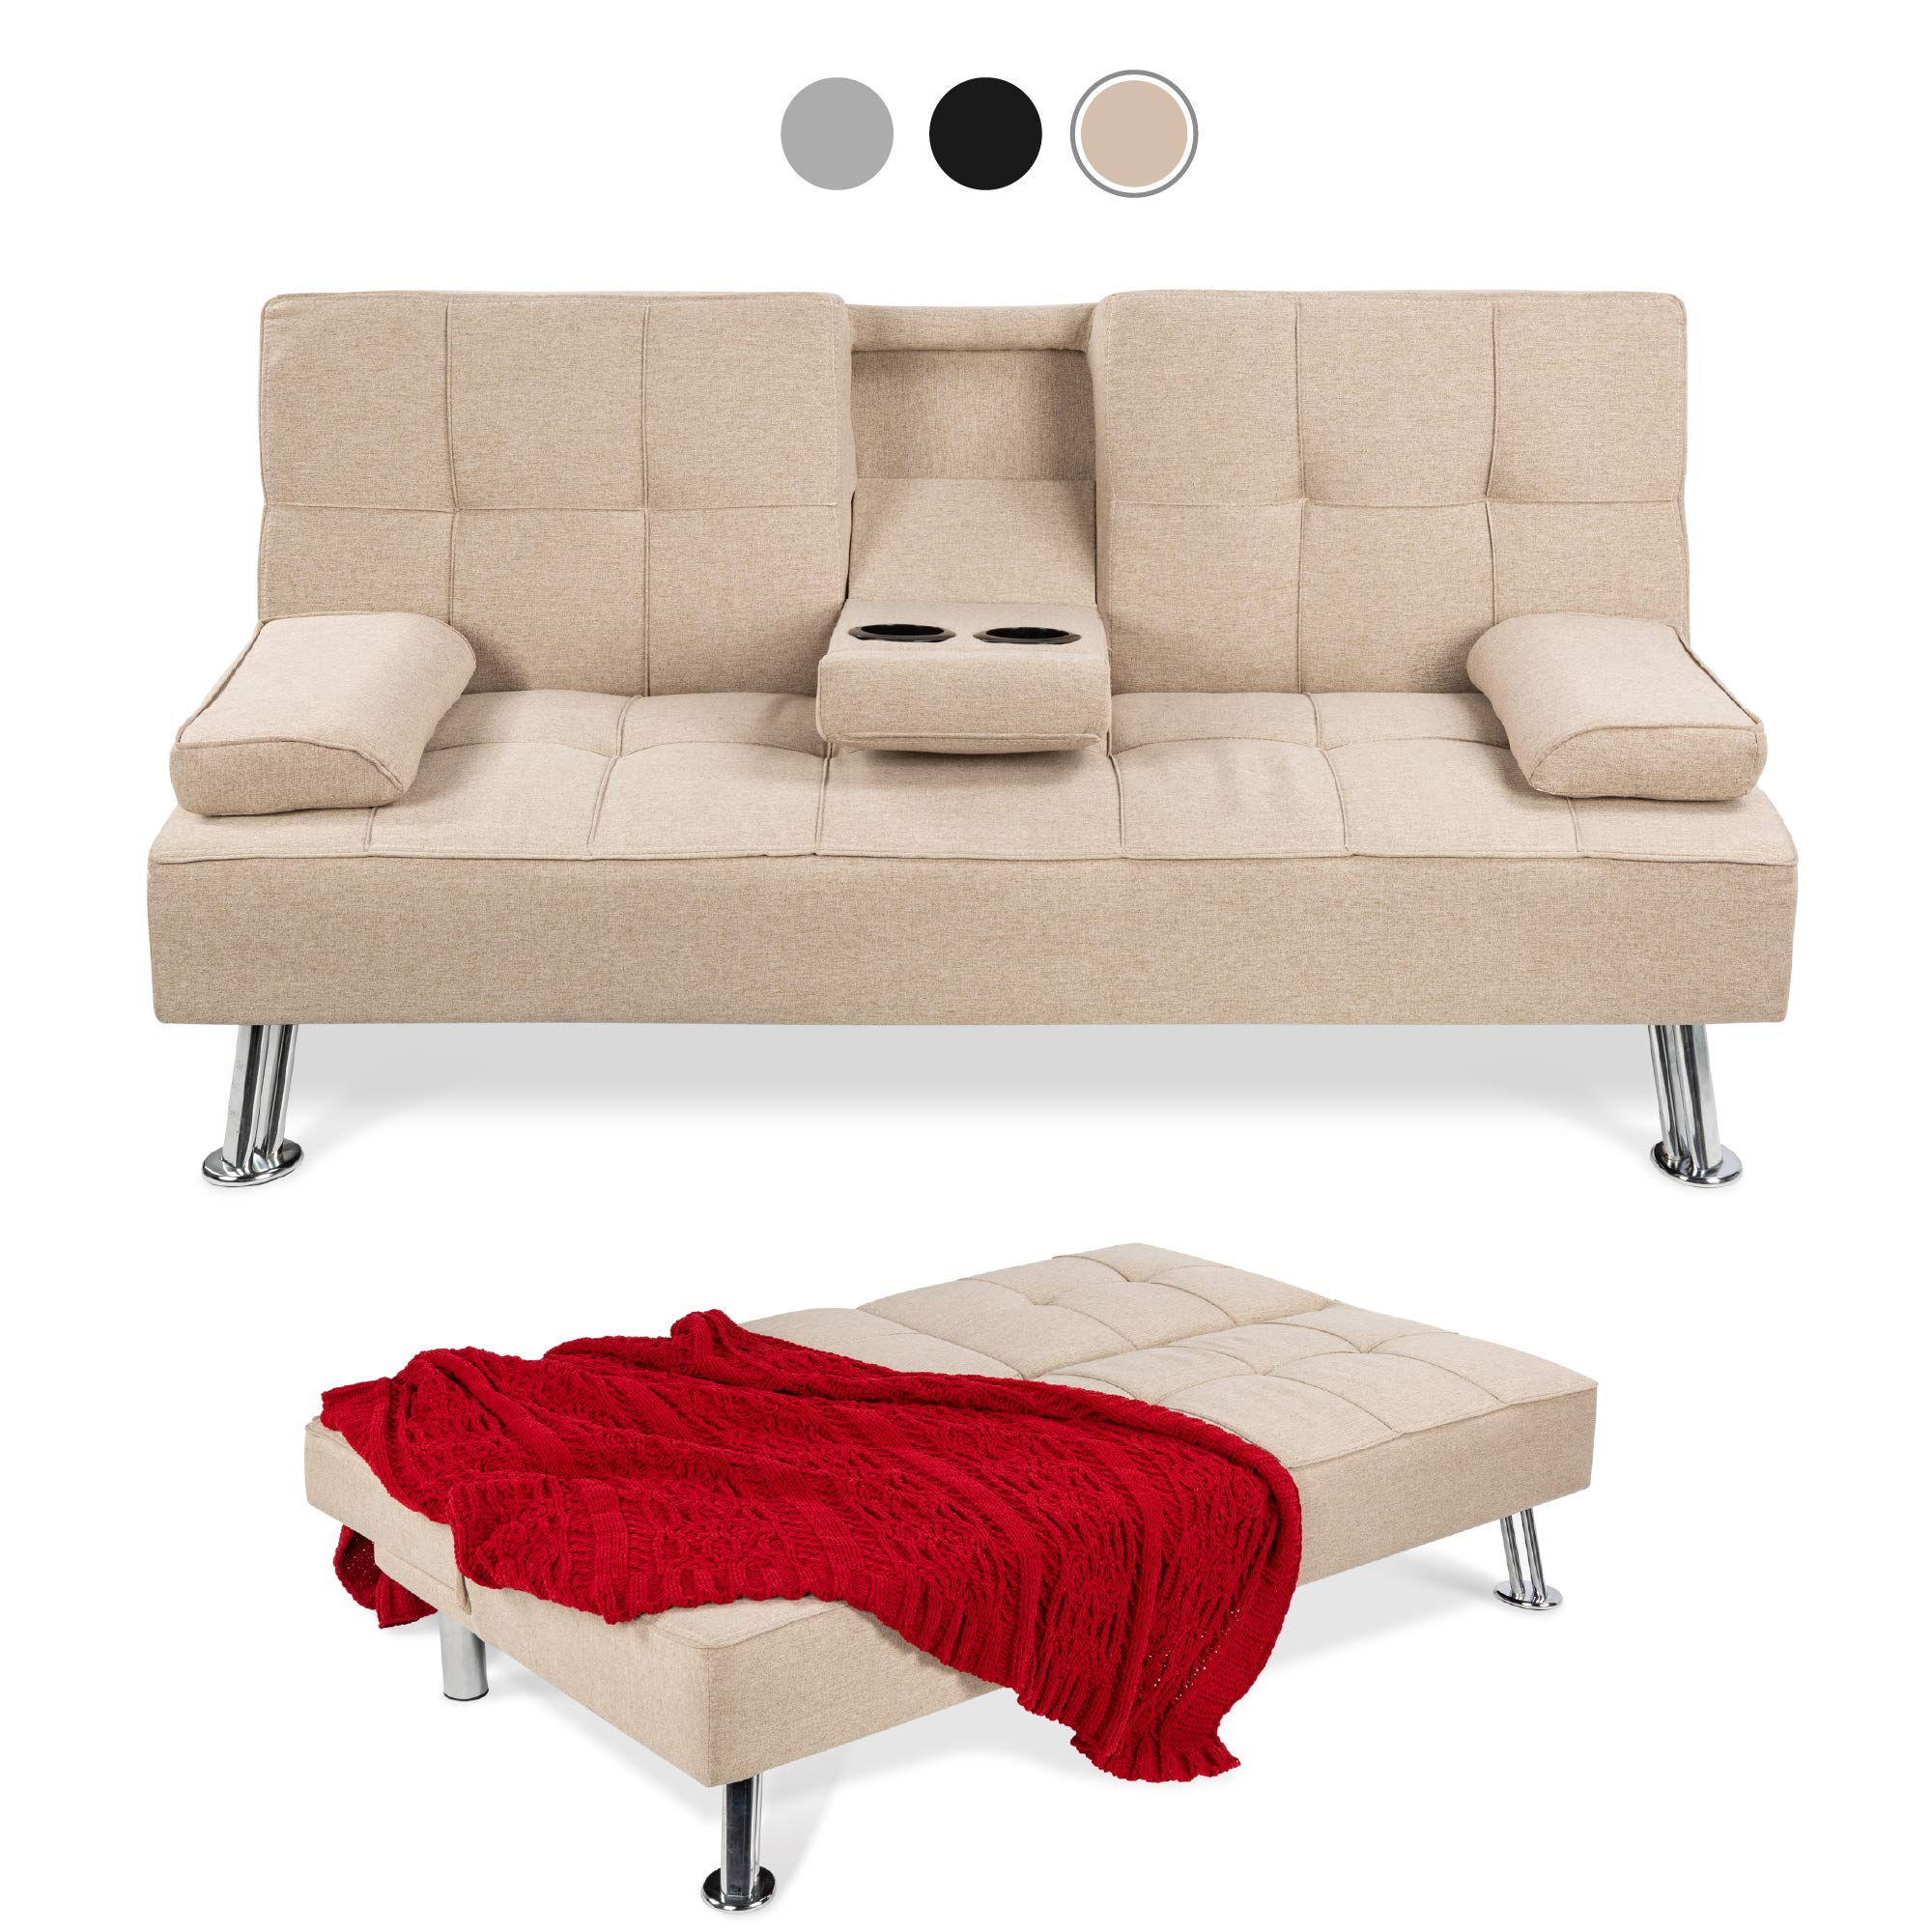 Best Choice Products Linen Upholstered Modern Convertible Folding Futon Sofa Bed for Compact Living Space, Apartment, Dorm, Bonus Room w/Removable Armrests, Metal Legs, 2 Cupholders - Beige